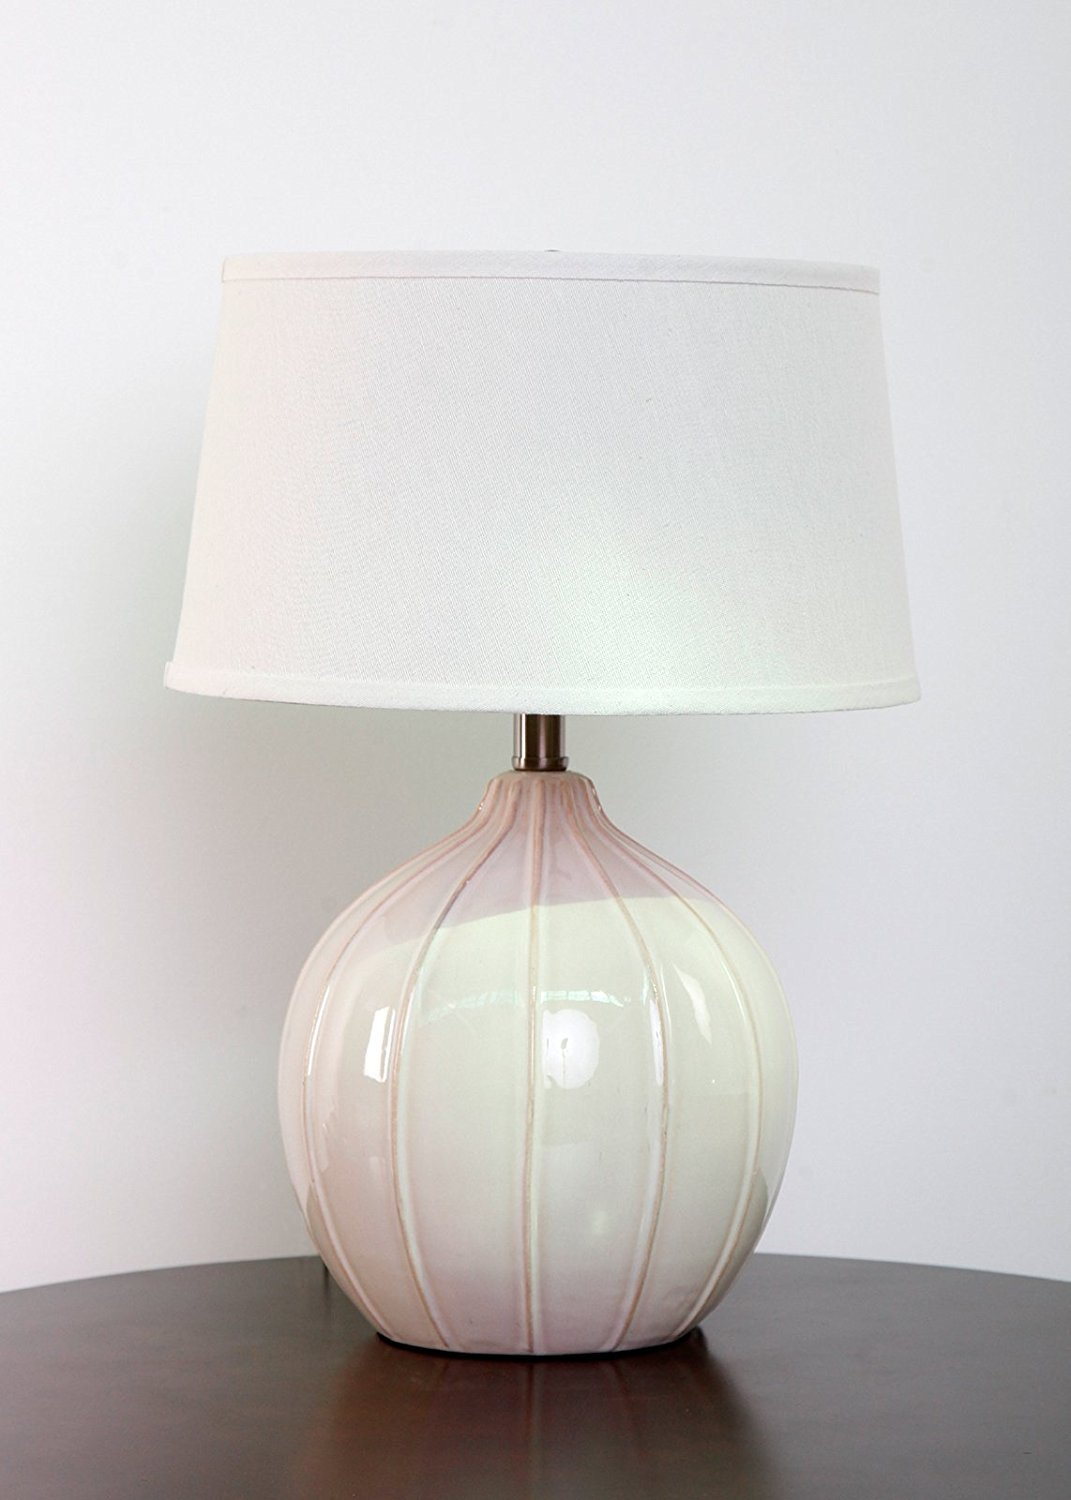 Highlands antique white ceramic table lamp with natural drum highlands antique white ceramic table lamp with natural drum hardback shade aloadofball Images